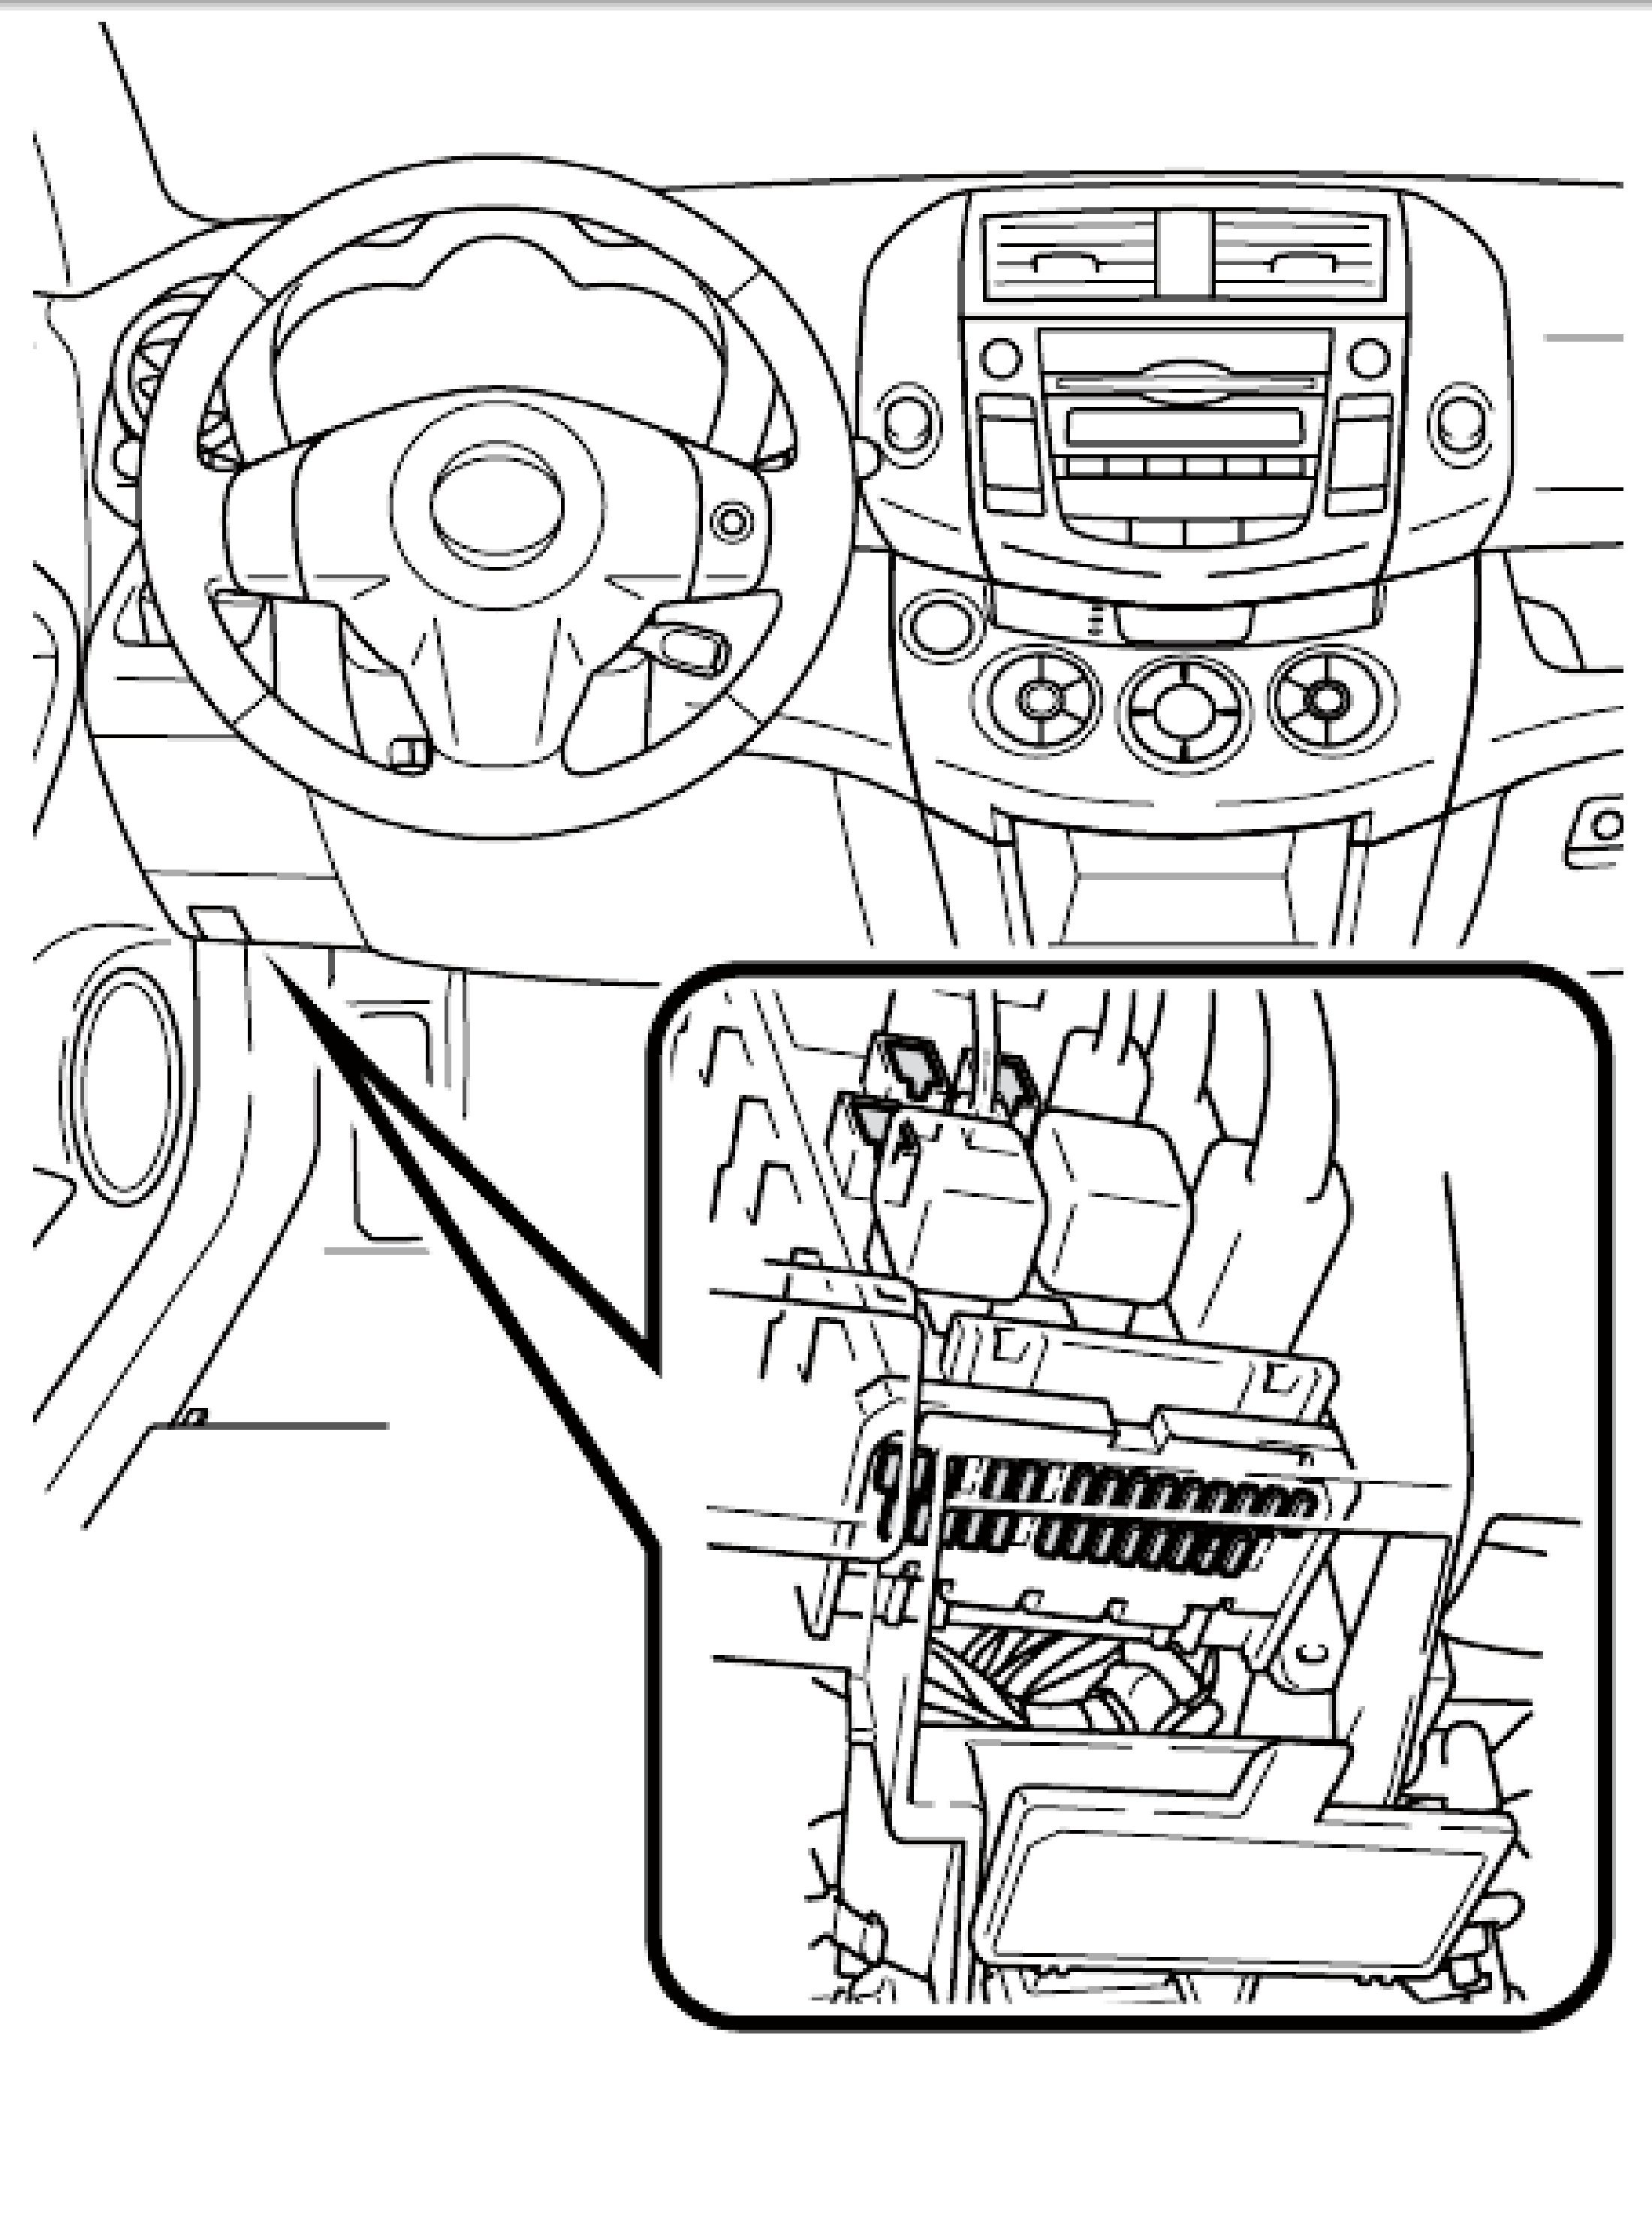 2009 toyota corolla s fuse box diagram